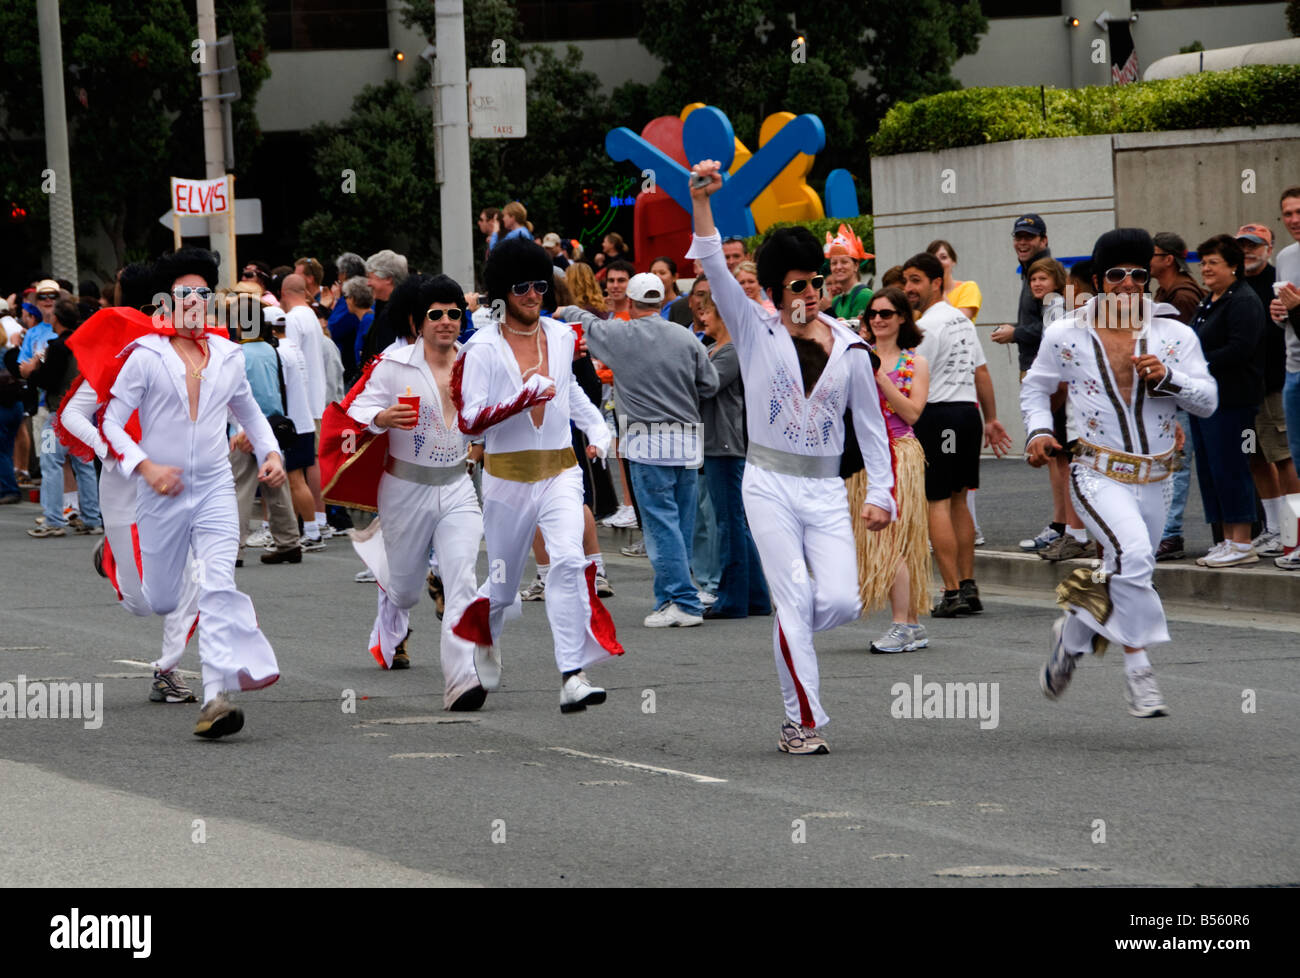 California San Francisco The Running Elvises in the annual Bay to Breakers run. - Stock Image